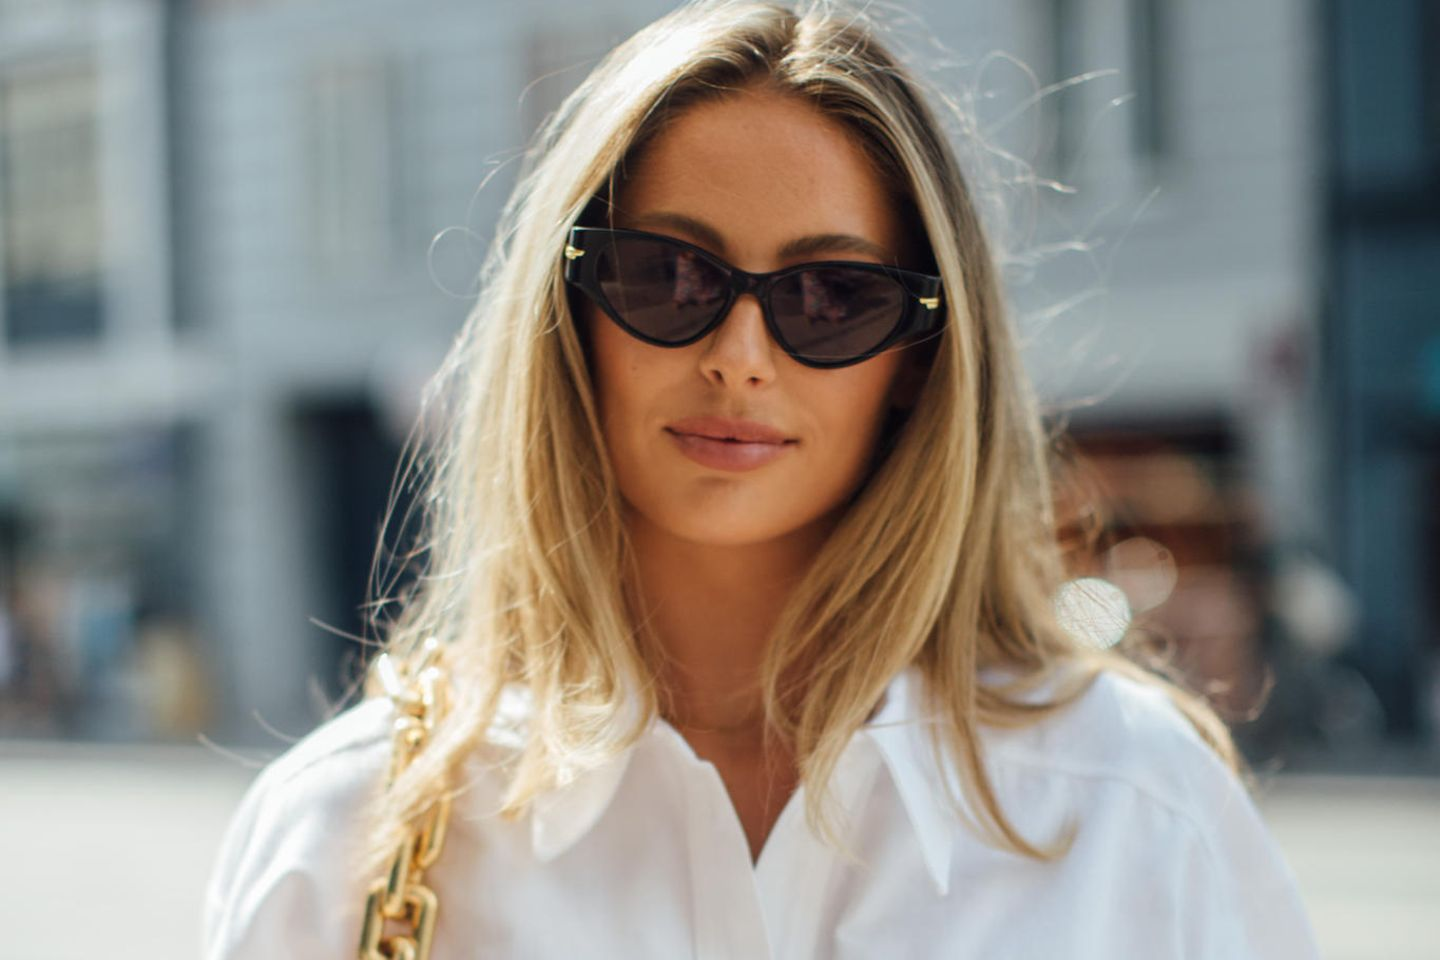 Palm Painting: This new hair trend is even more beautiful than balayage - and we love it!